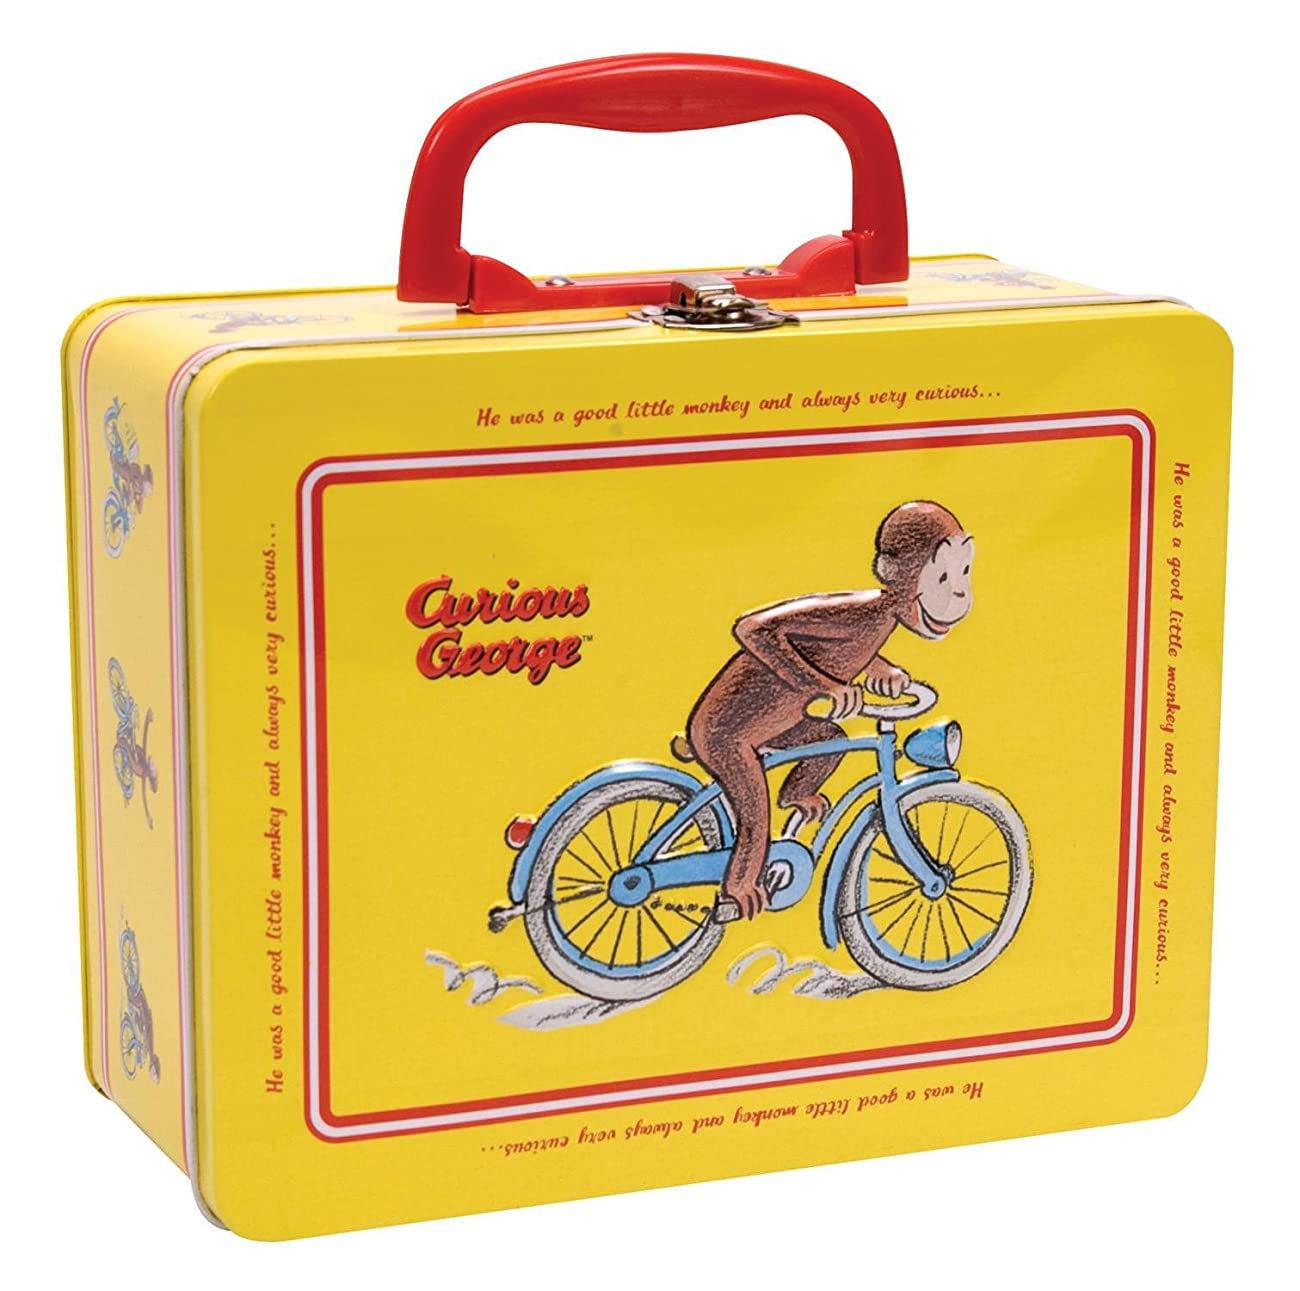 Curious George Tin Keepsake Box with Latch by Schylling 0